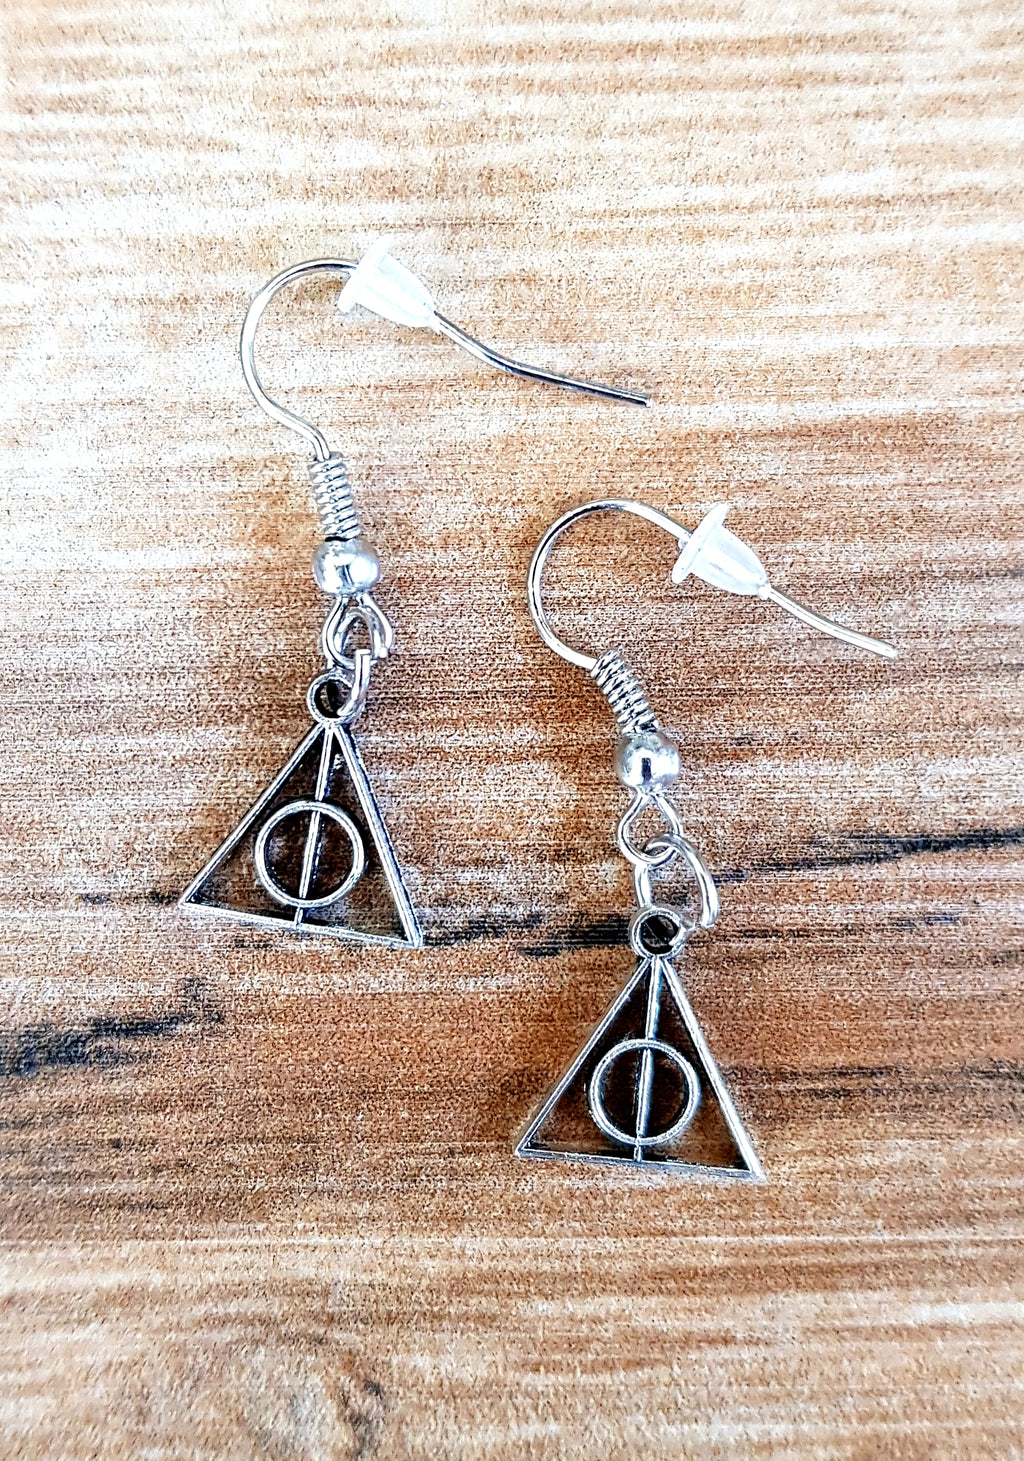 Tiny Deathly Hallows Harry Potter Earrings